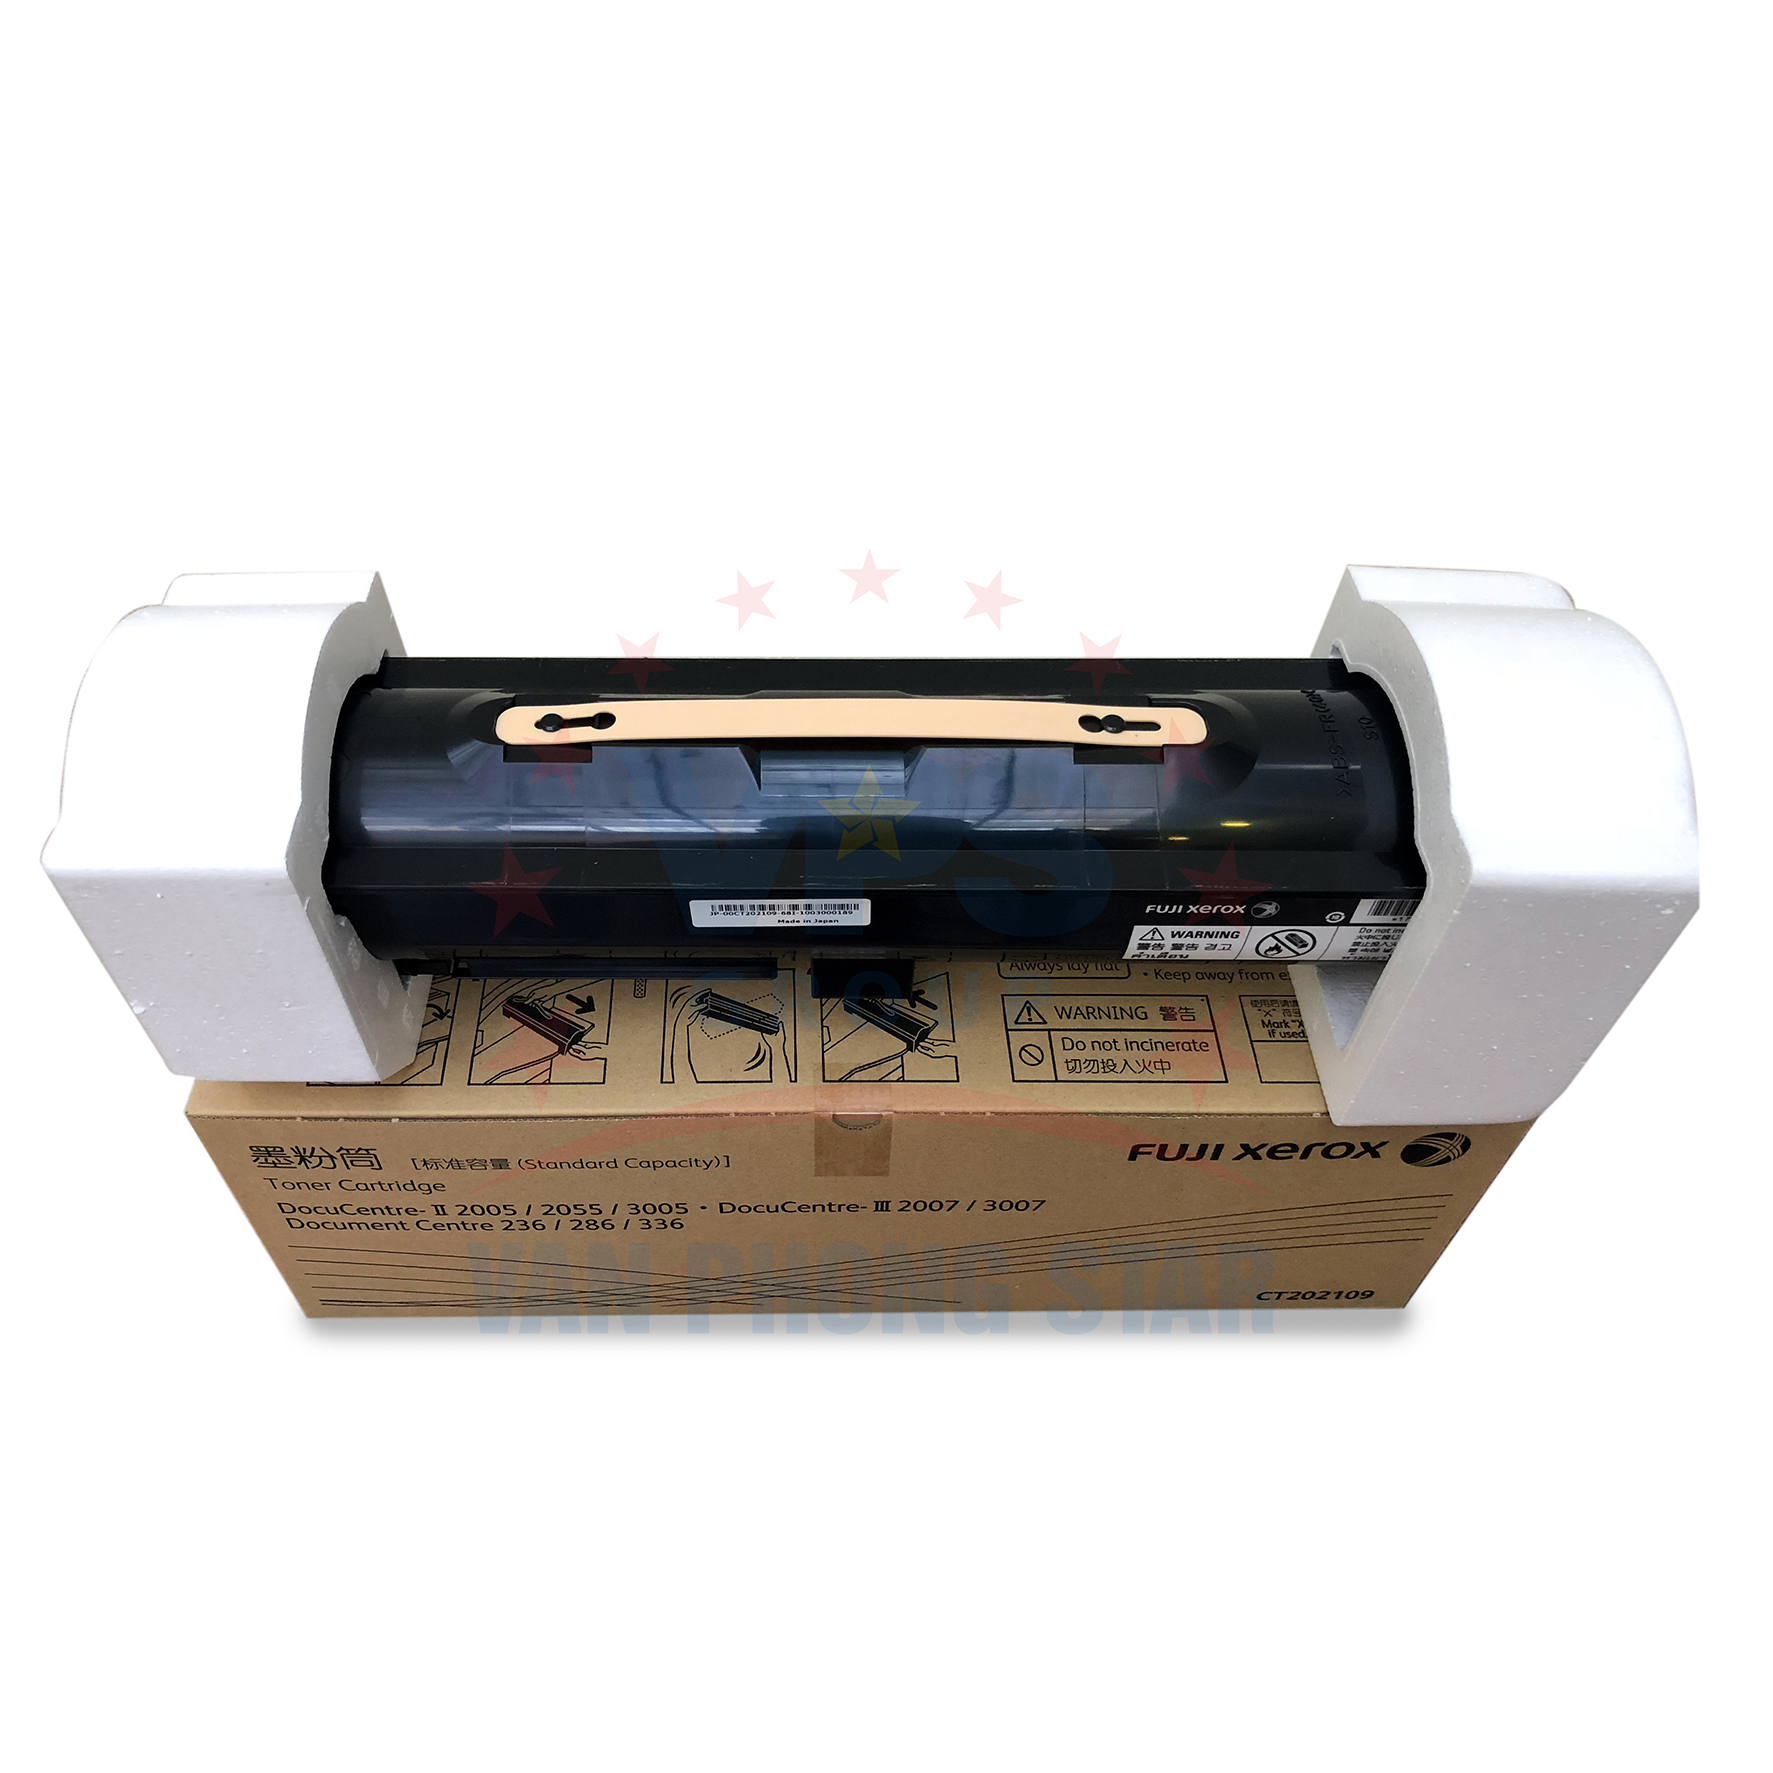 muc-dung-cho-may-xerox-docucentre-236-286-336-toner-cartridge-docucentre-236-286